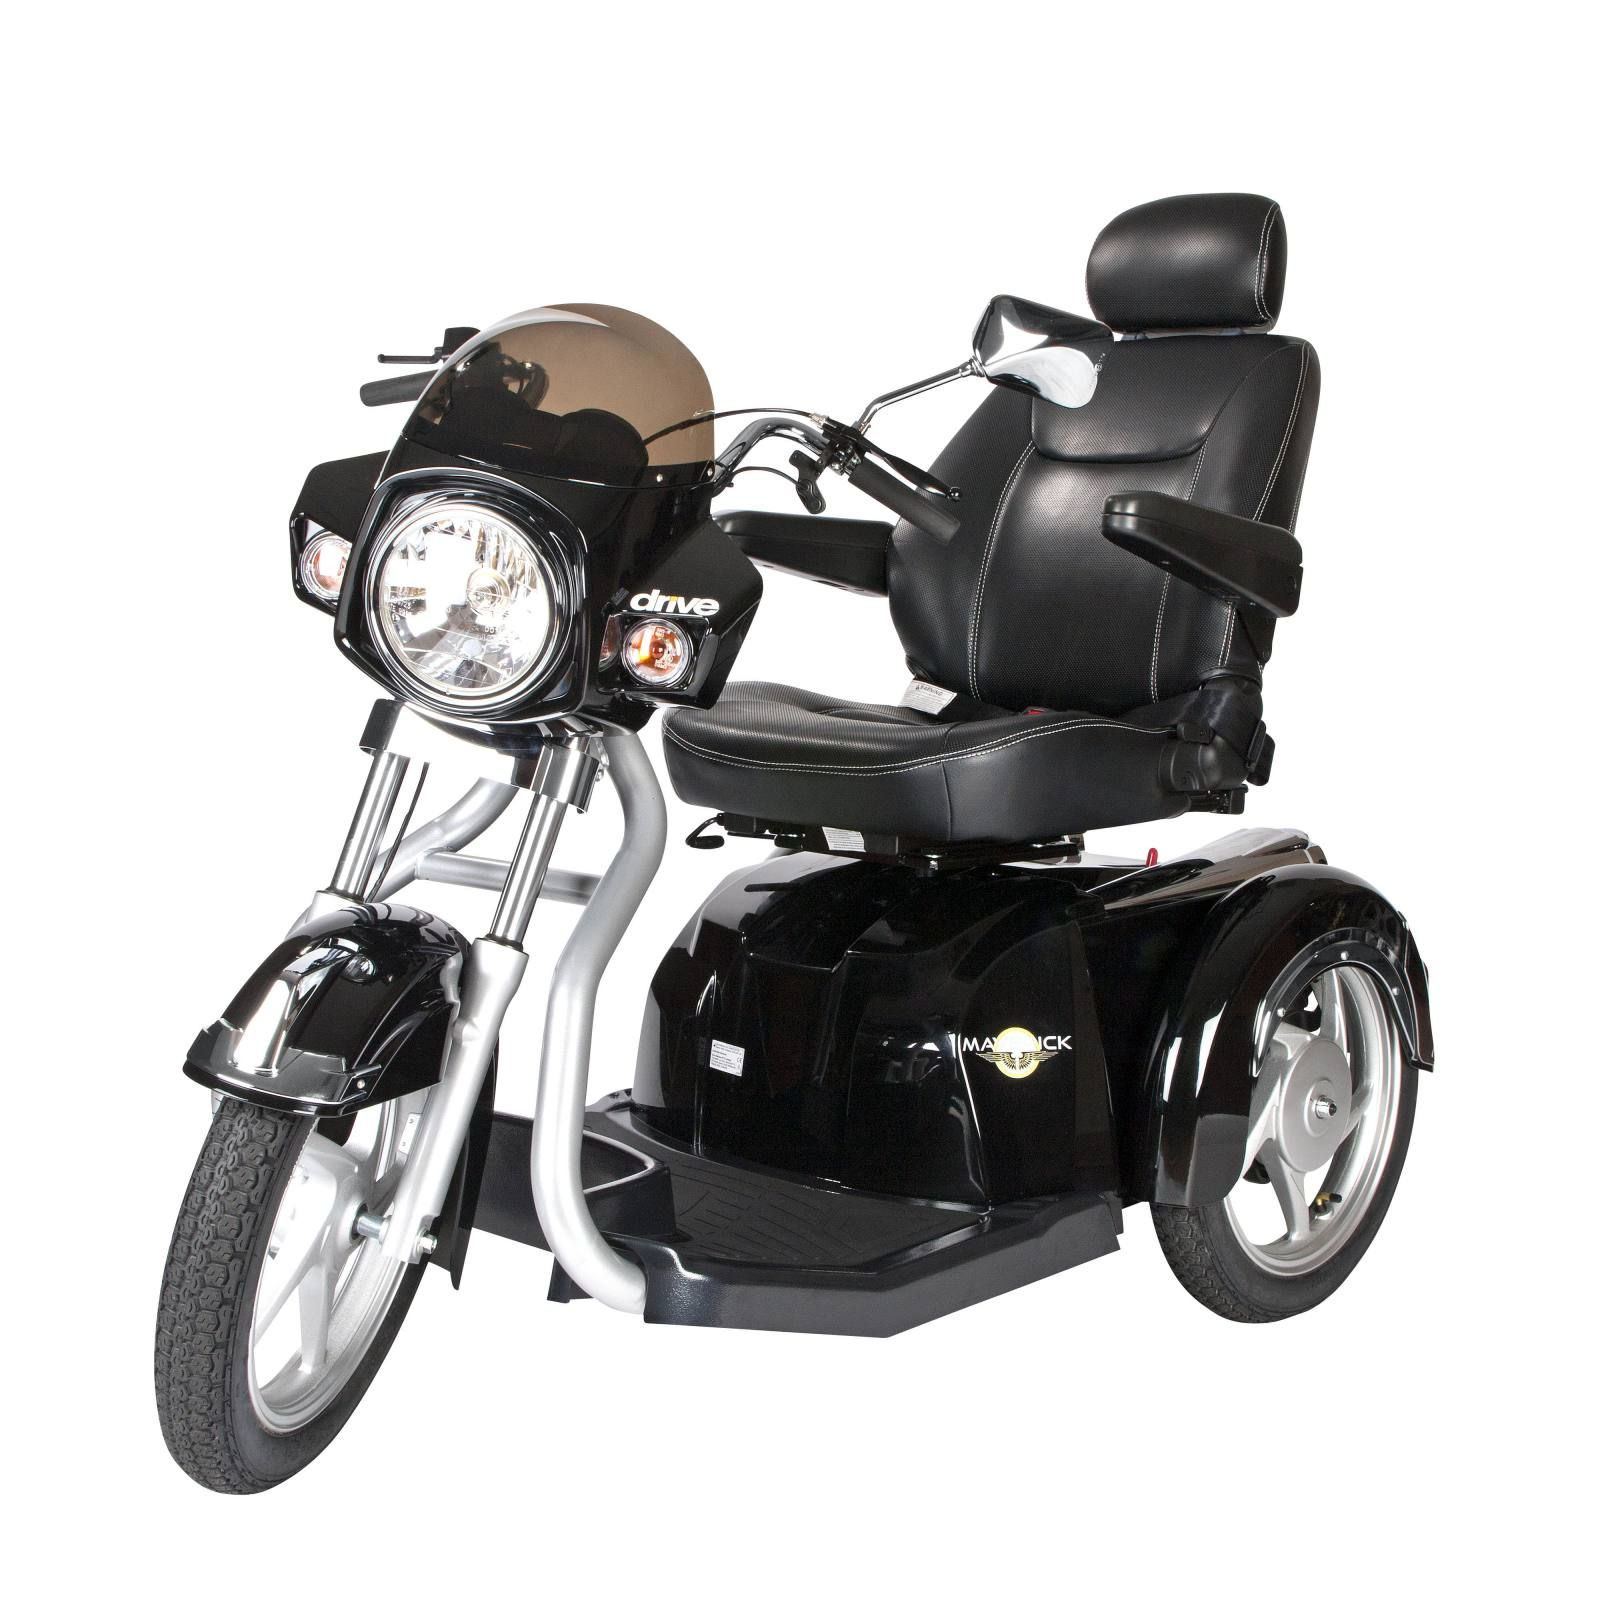 Maverick Executive Three Wheel Power Scooter for sale in